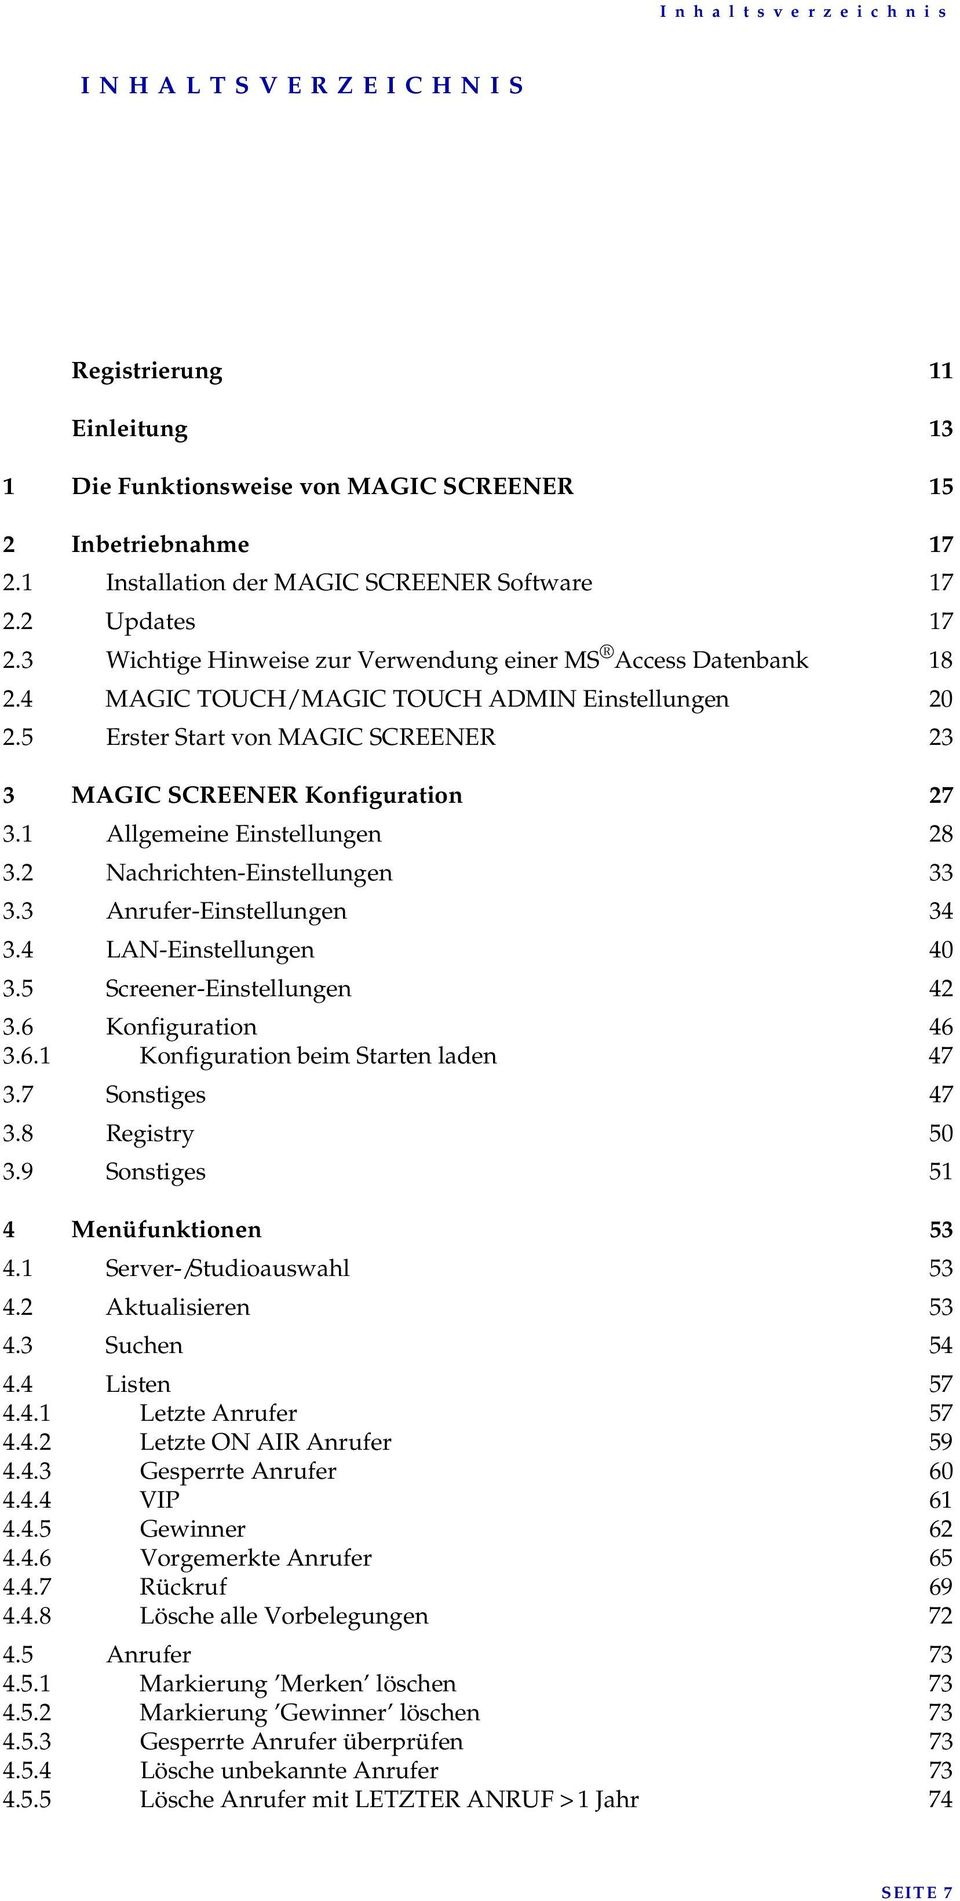 5 Erster Start von MAGIC SCREENER 23 3 MAGIC SCREENER Konfiguration 27 3.1 Allgemeine Einstellungen 28 3.2 Nachrichten-Einstellungen 33 3.3 Anrufer-Einstellungen 34 3.4 LAN-Einstellungen 40 3.